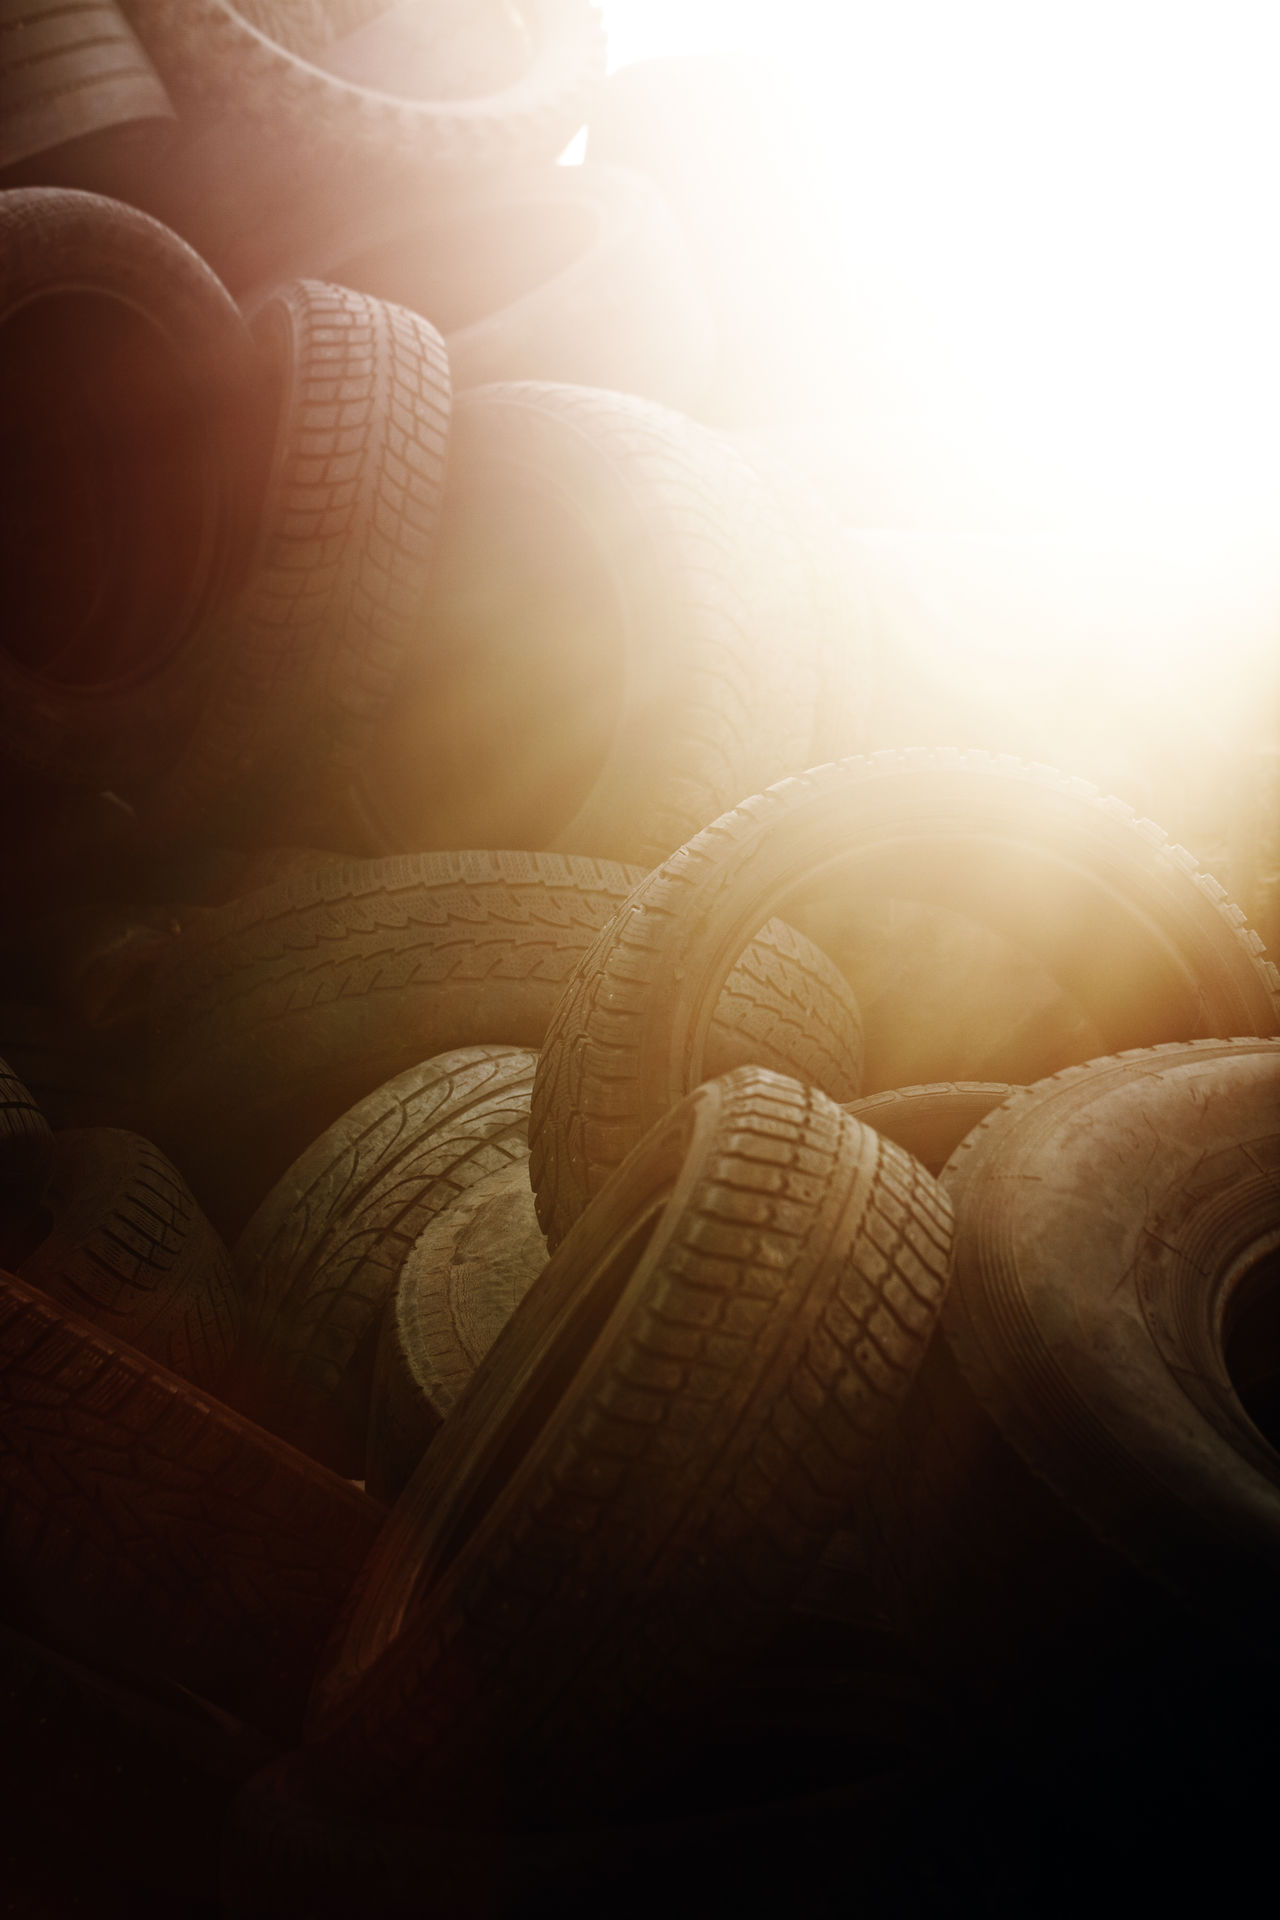 Used car tyres. Car Discarded Junk Light Nobody Objects Obsolete Old Rubber Sun Sunlight Tire Tires Transportation Tyre Tyres